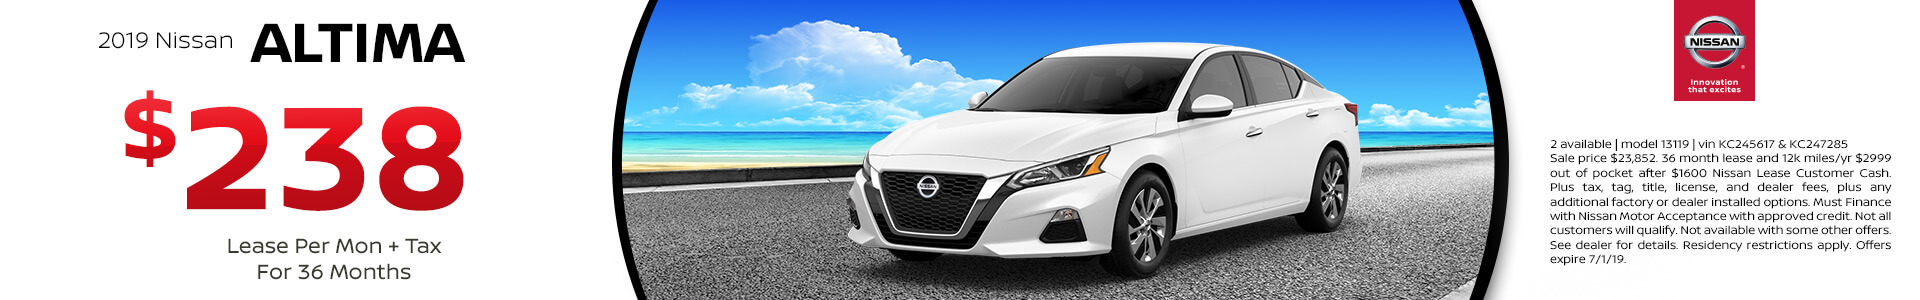 2019 Nissan Altima Lease for $238